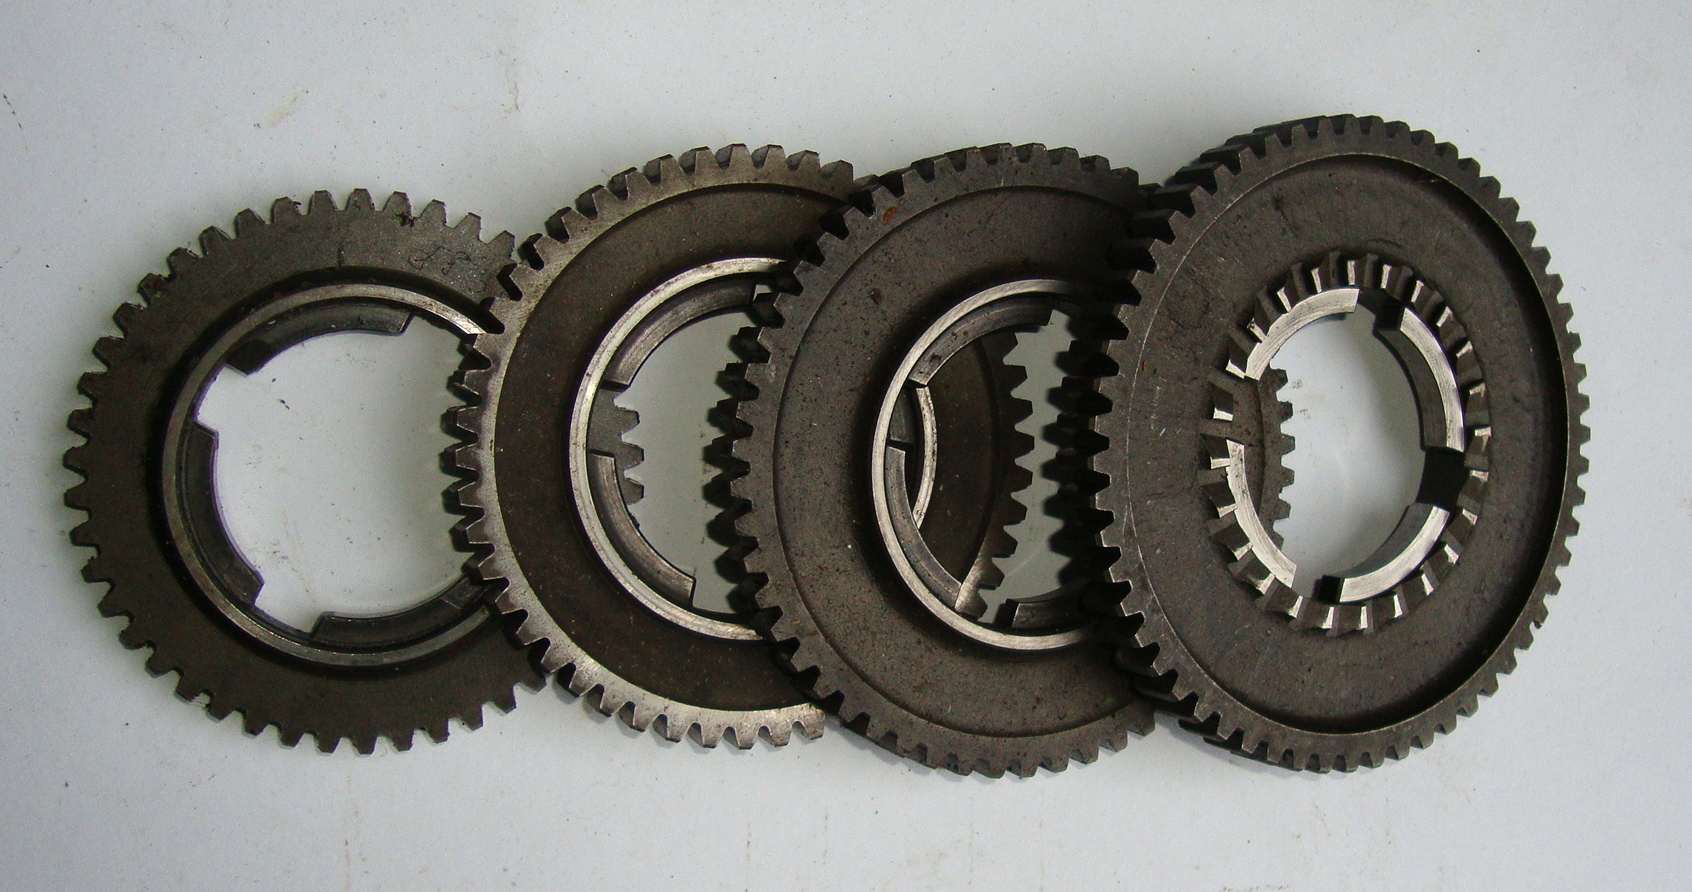 Gear cogs, Vespa GS 150, used